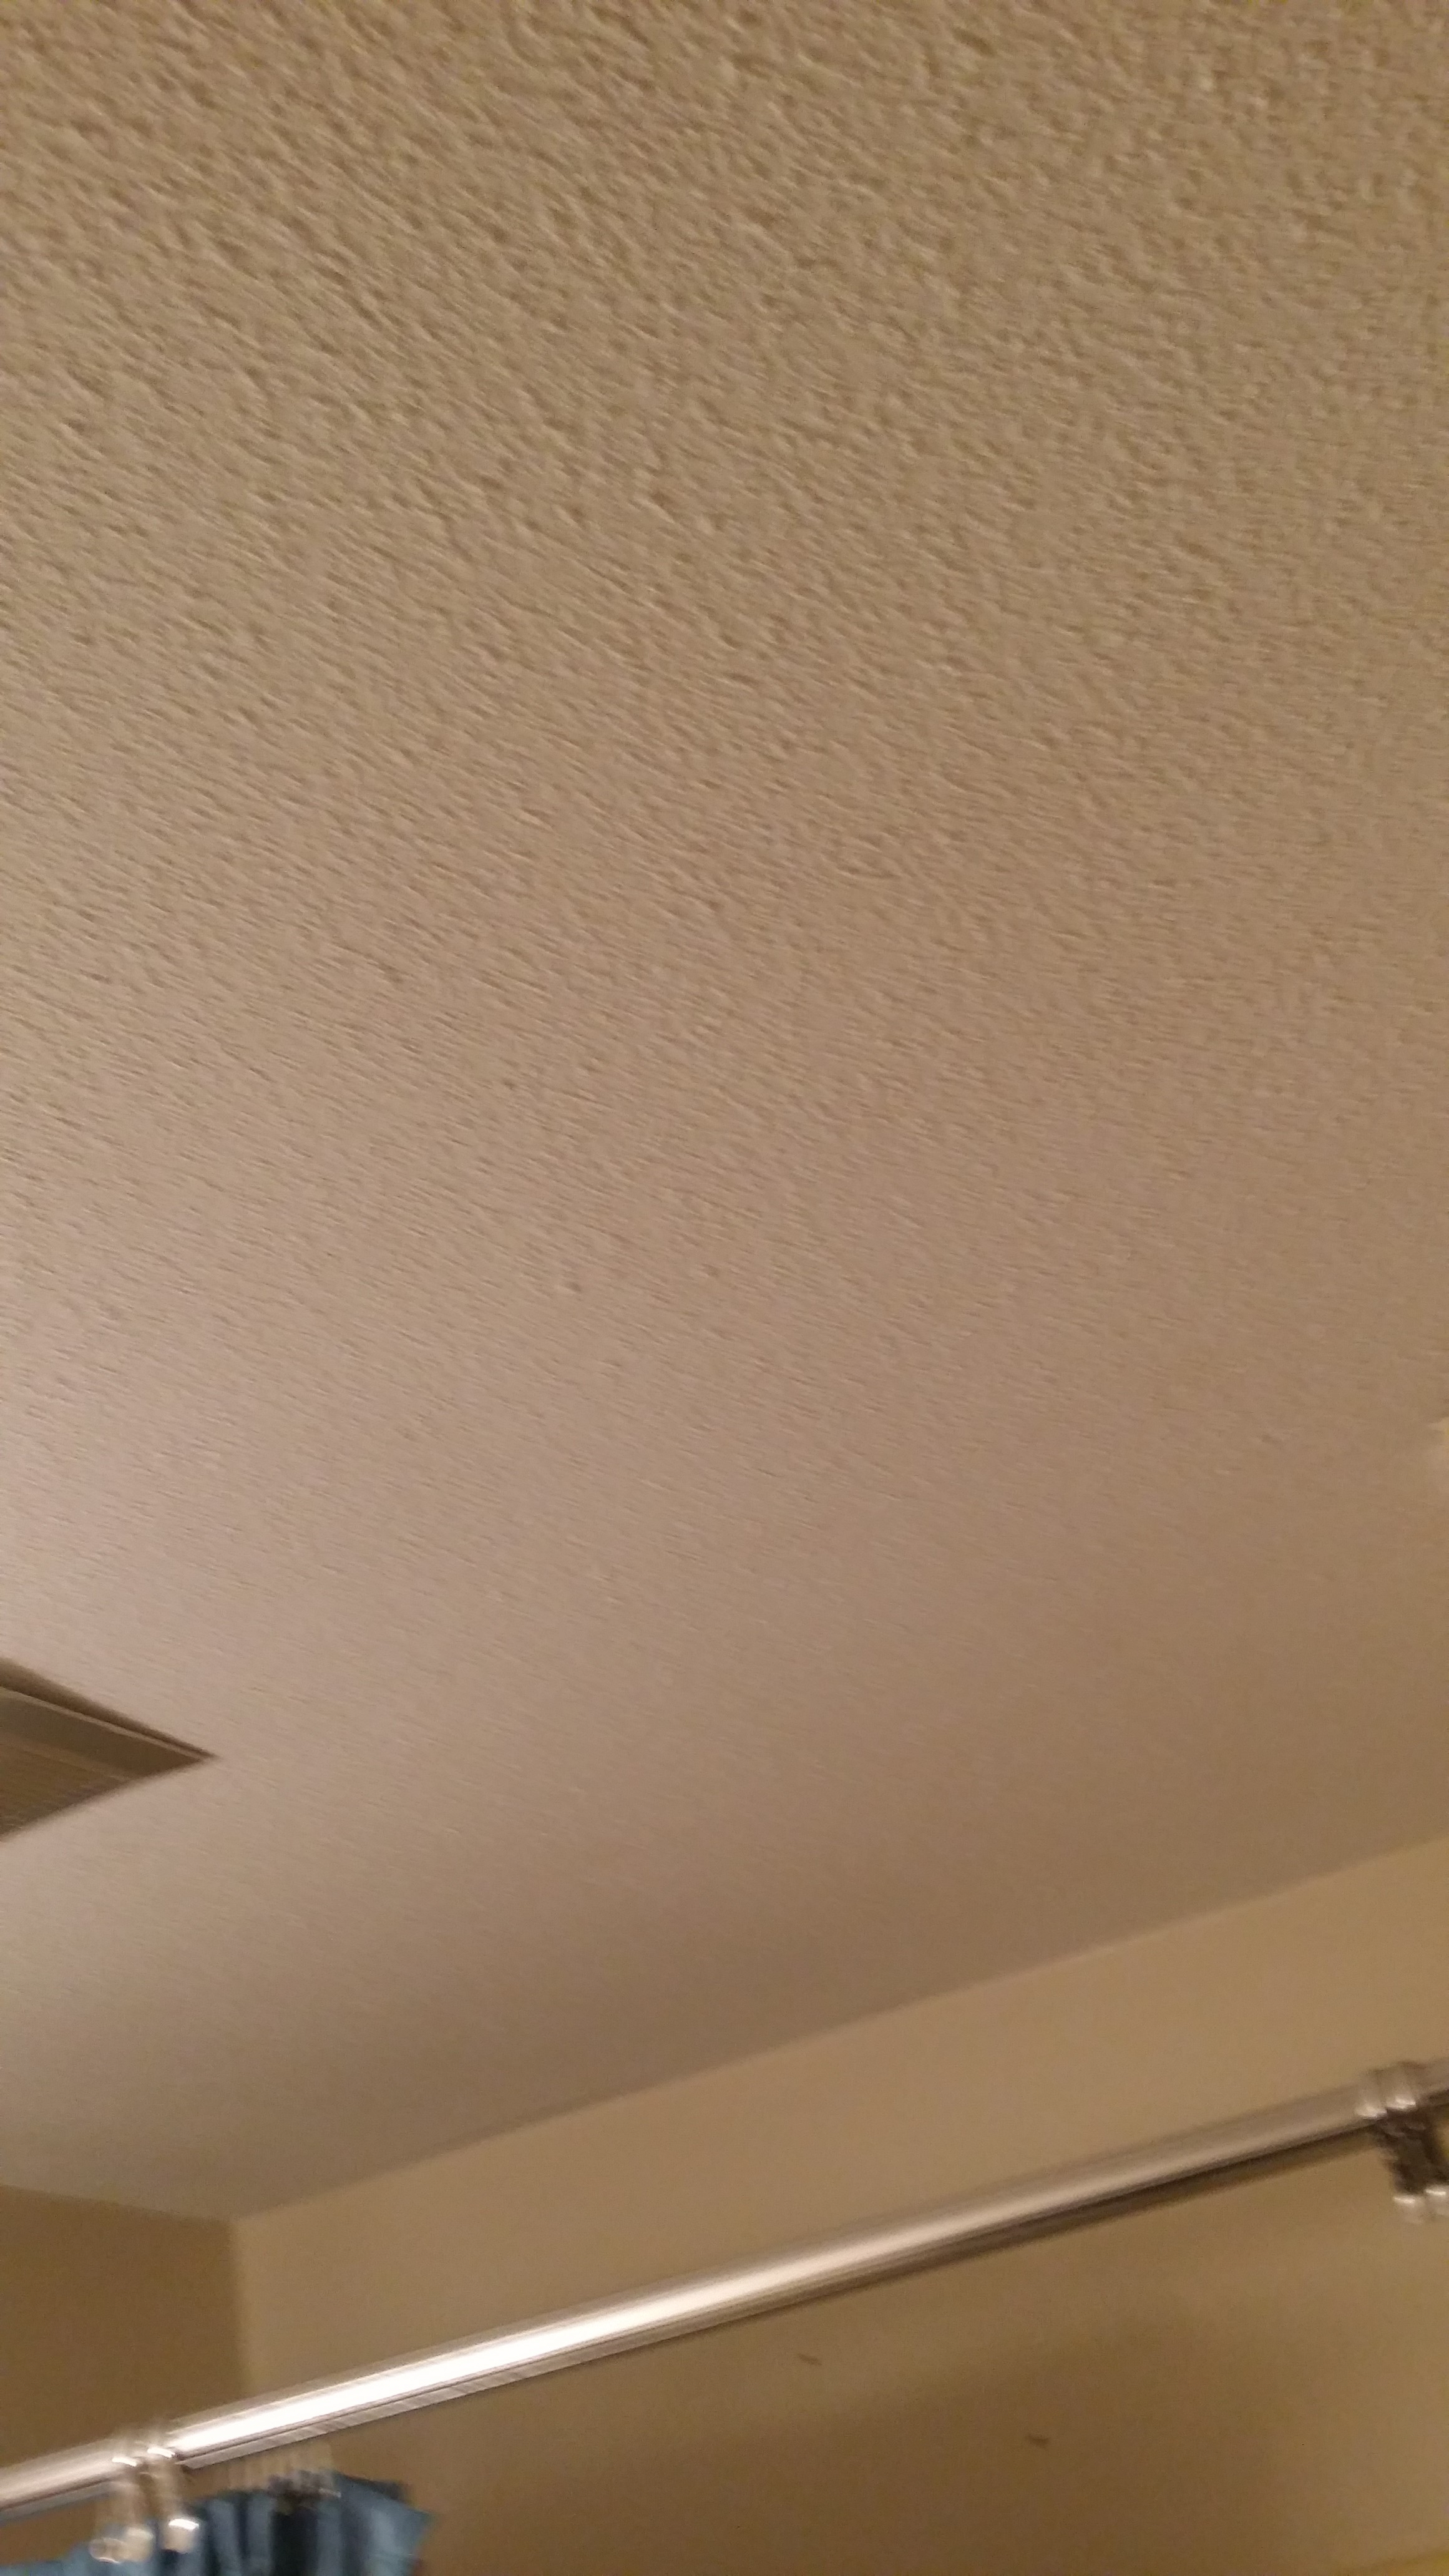 After_ceiling repair